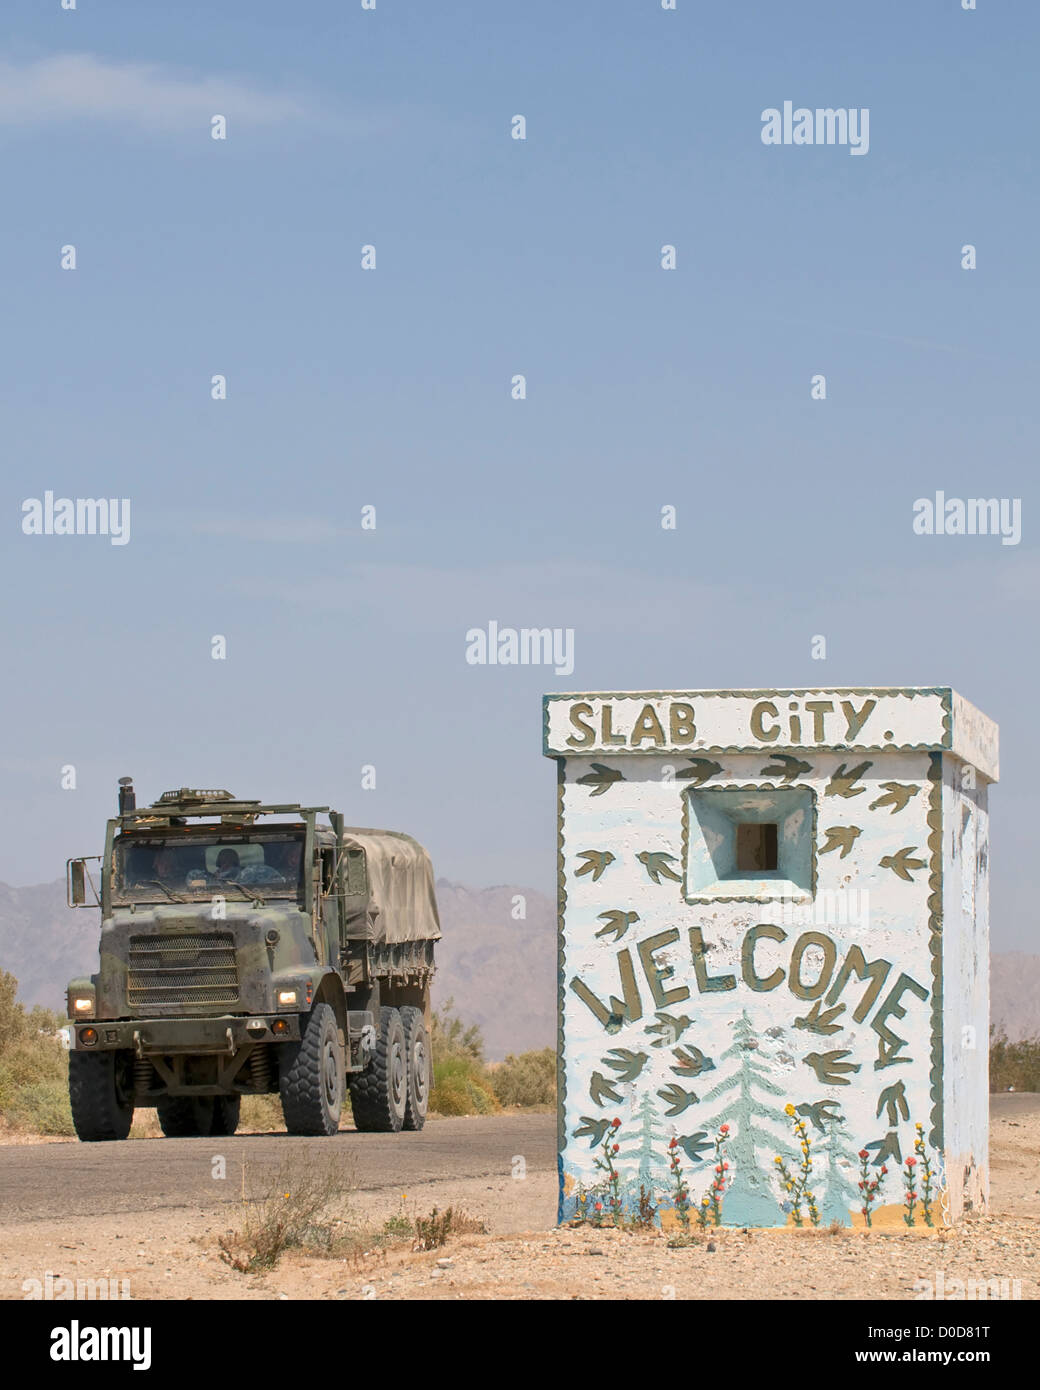 Military Transport Vehicle at Entrance to Slab City - Stock Image